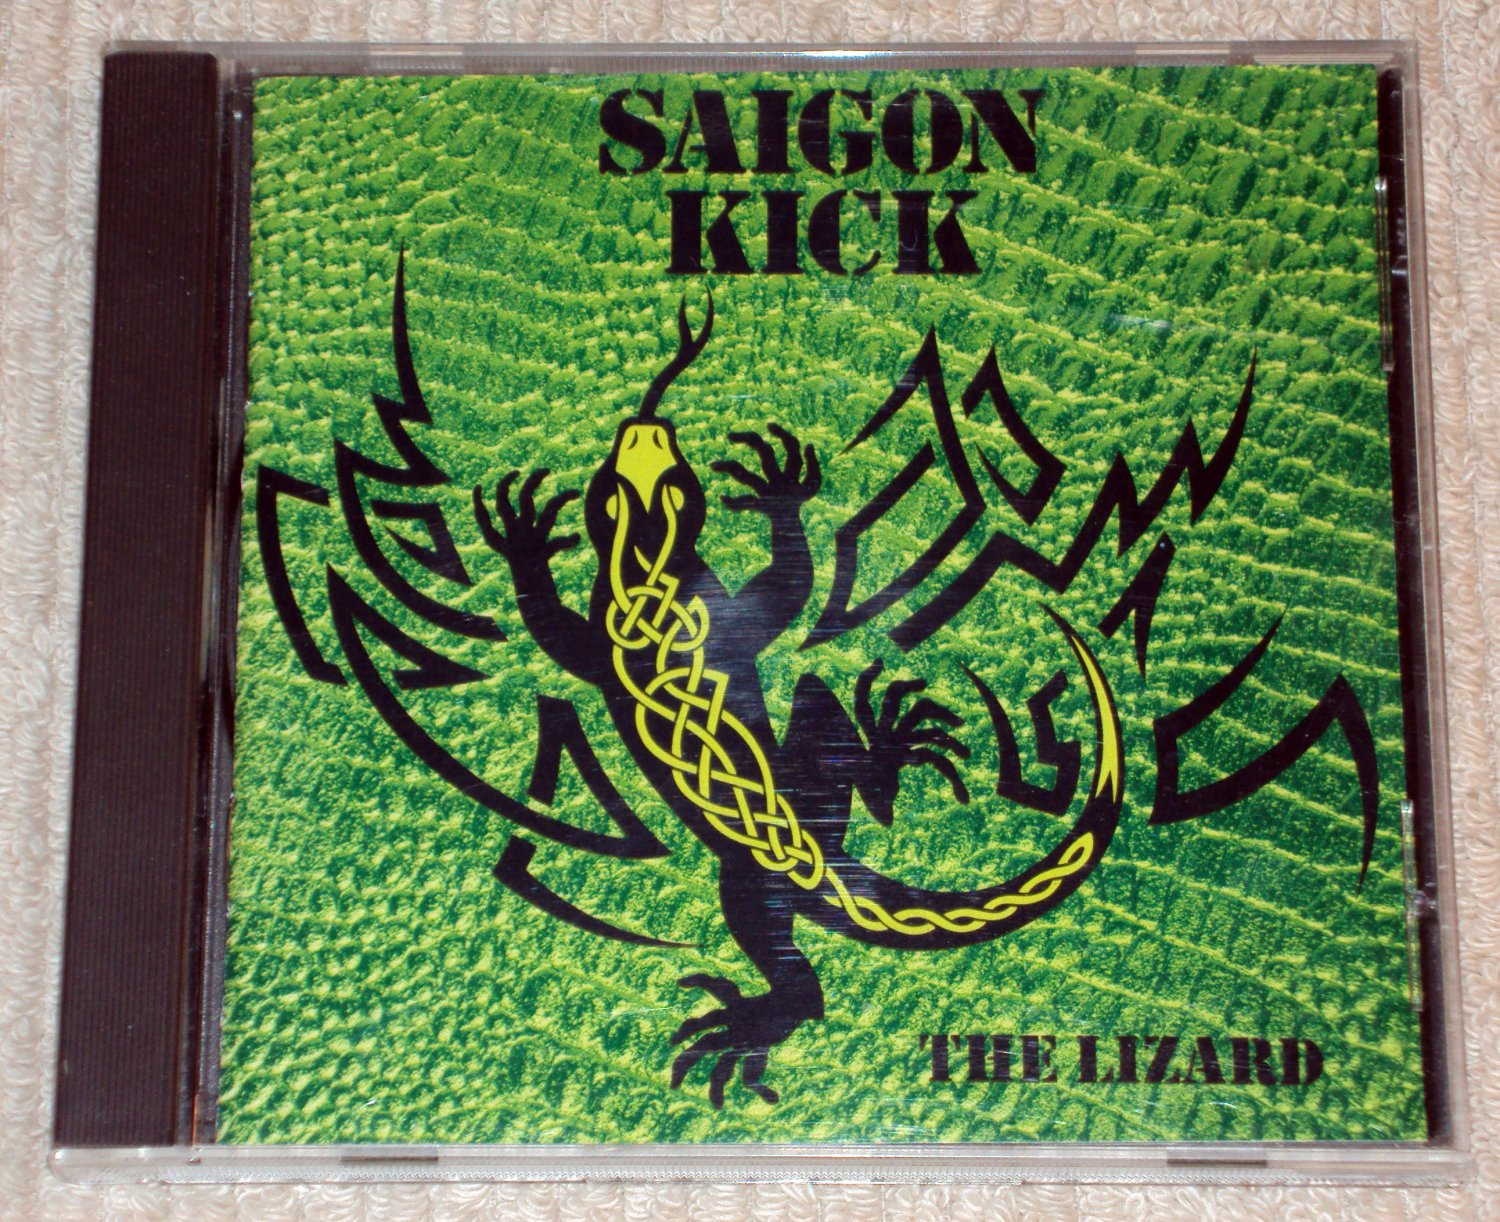 Saigon Kick - The Lizard CD 1992